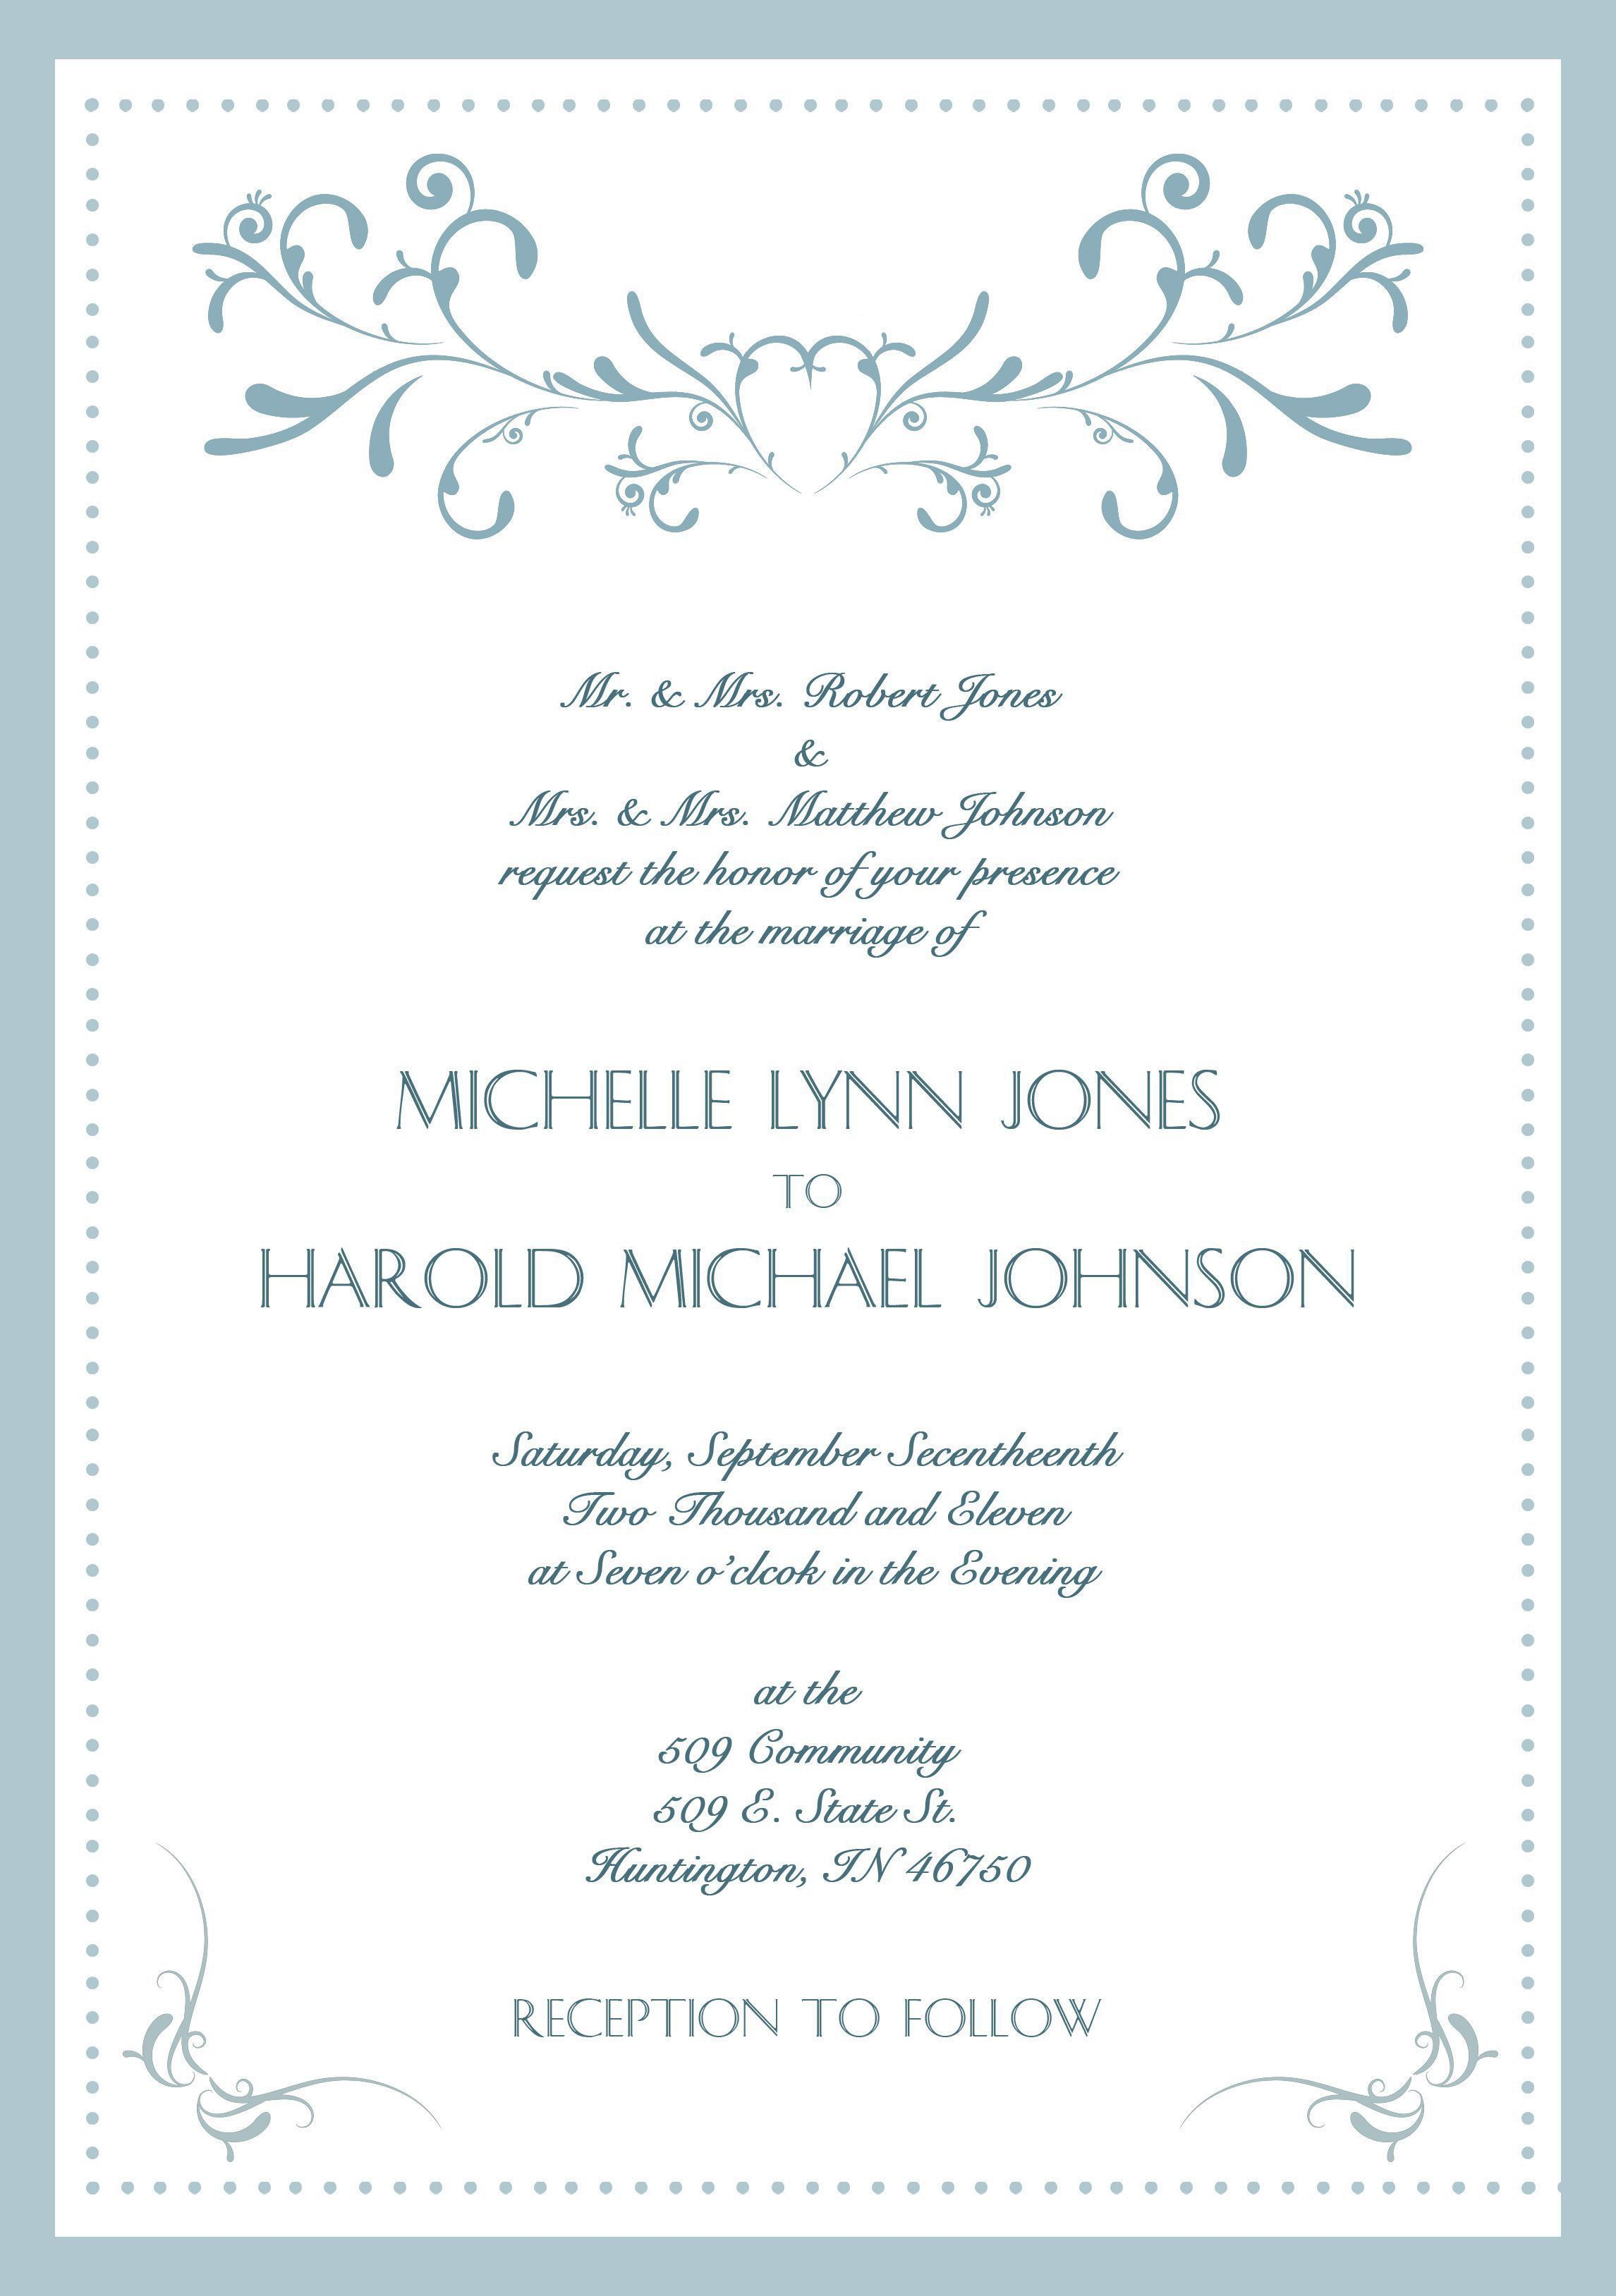 Sample wedding invitation cards in english wedding invitations sample wedding invitation cards in english stopboris Choice Image